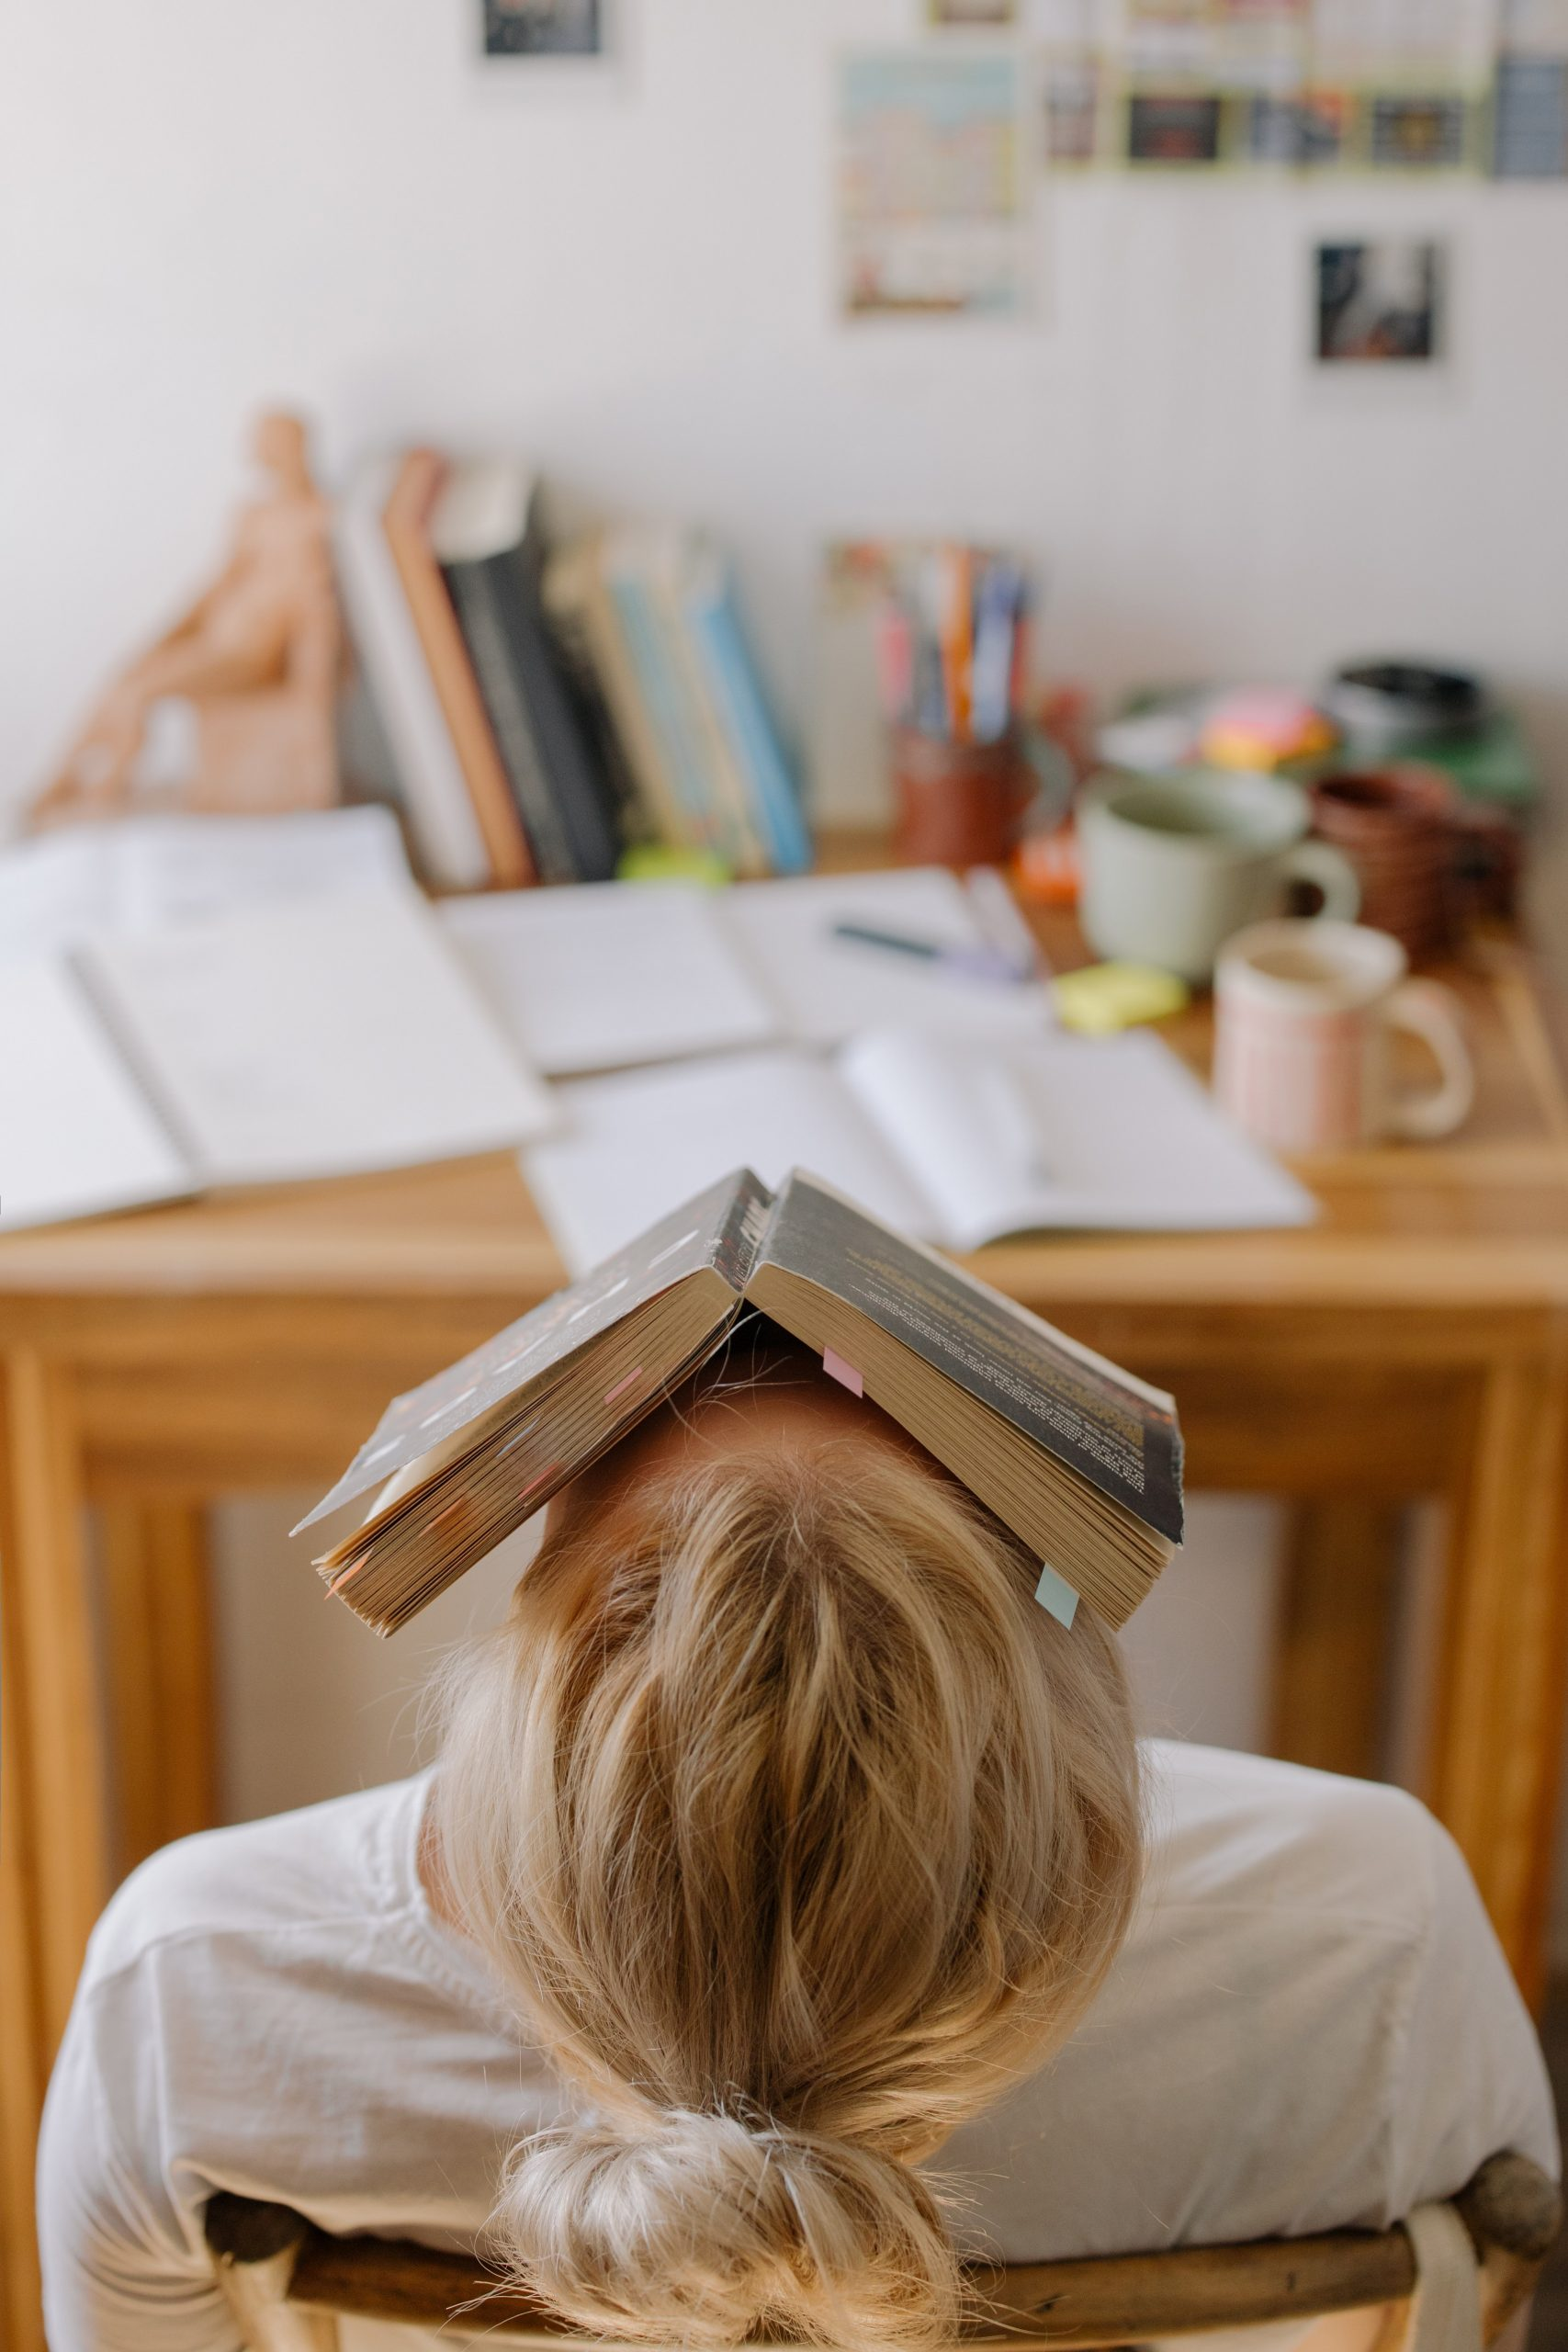 Photo of Caucasian teen girl with head tilted back and book on face as she sits in front of her desk. Photo represents her fatigue and lack of motivation when it comes to studying for her final exams; in which case she could benefit from online anxiety treatment for teens in Illinois.